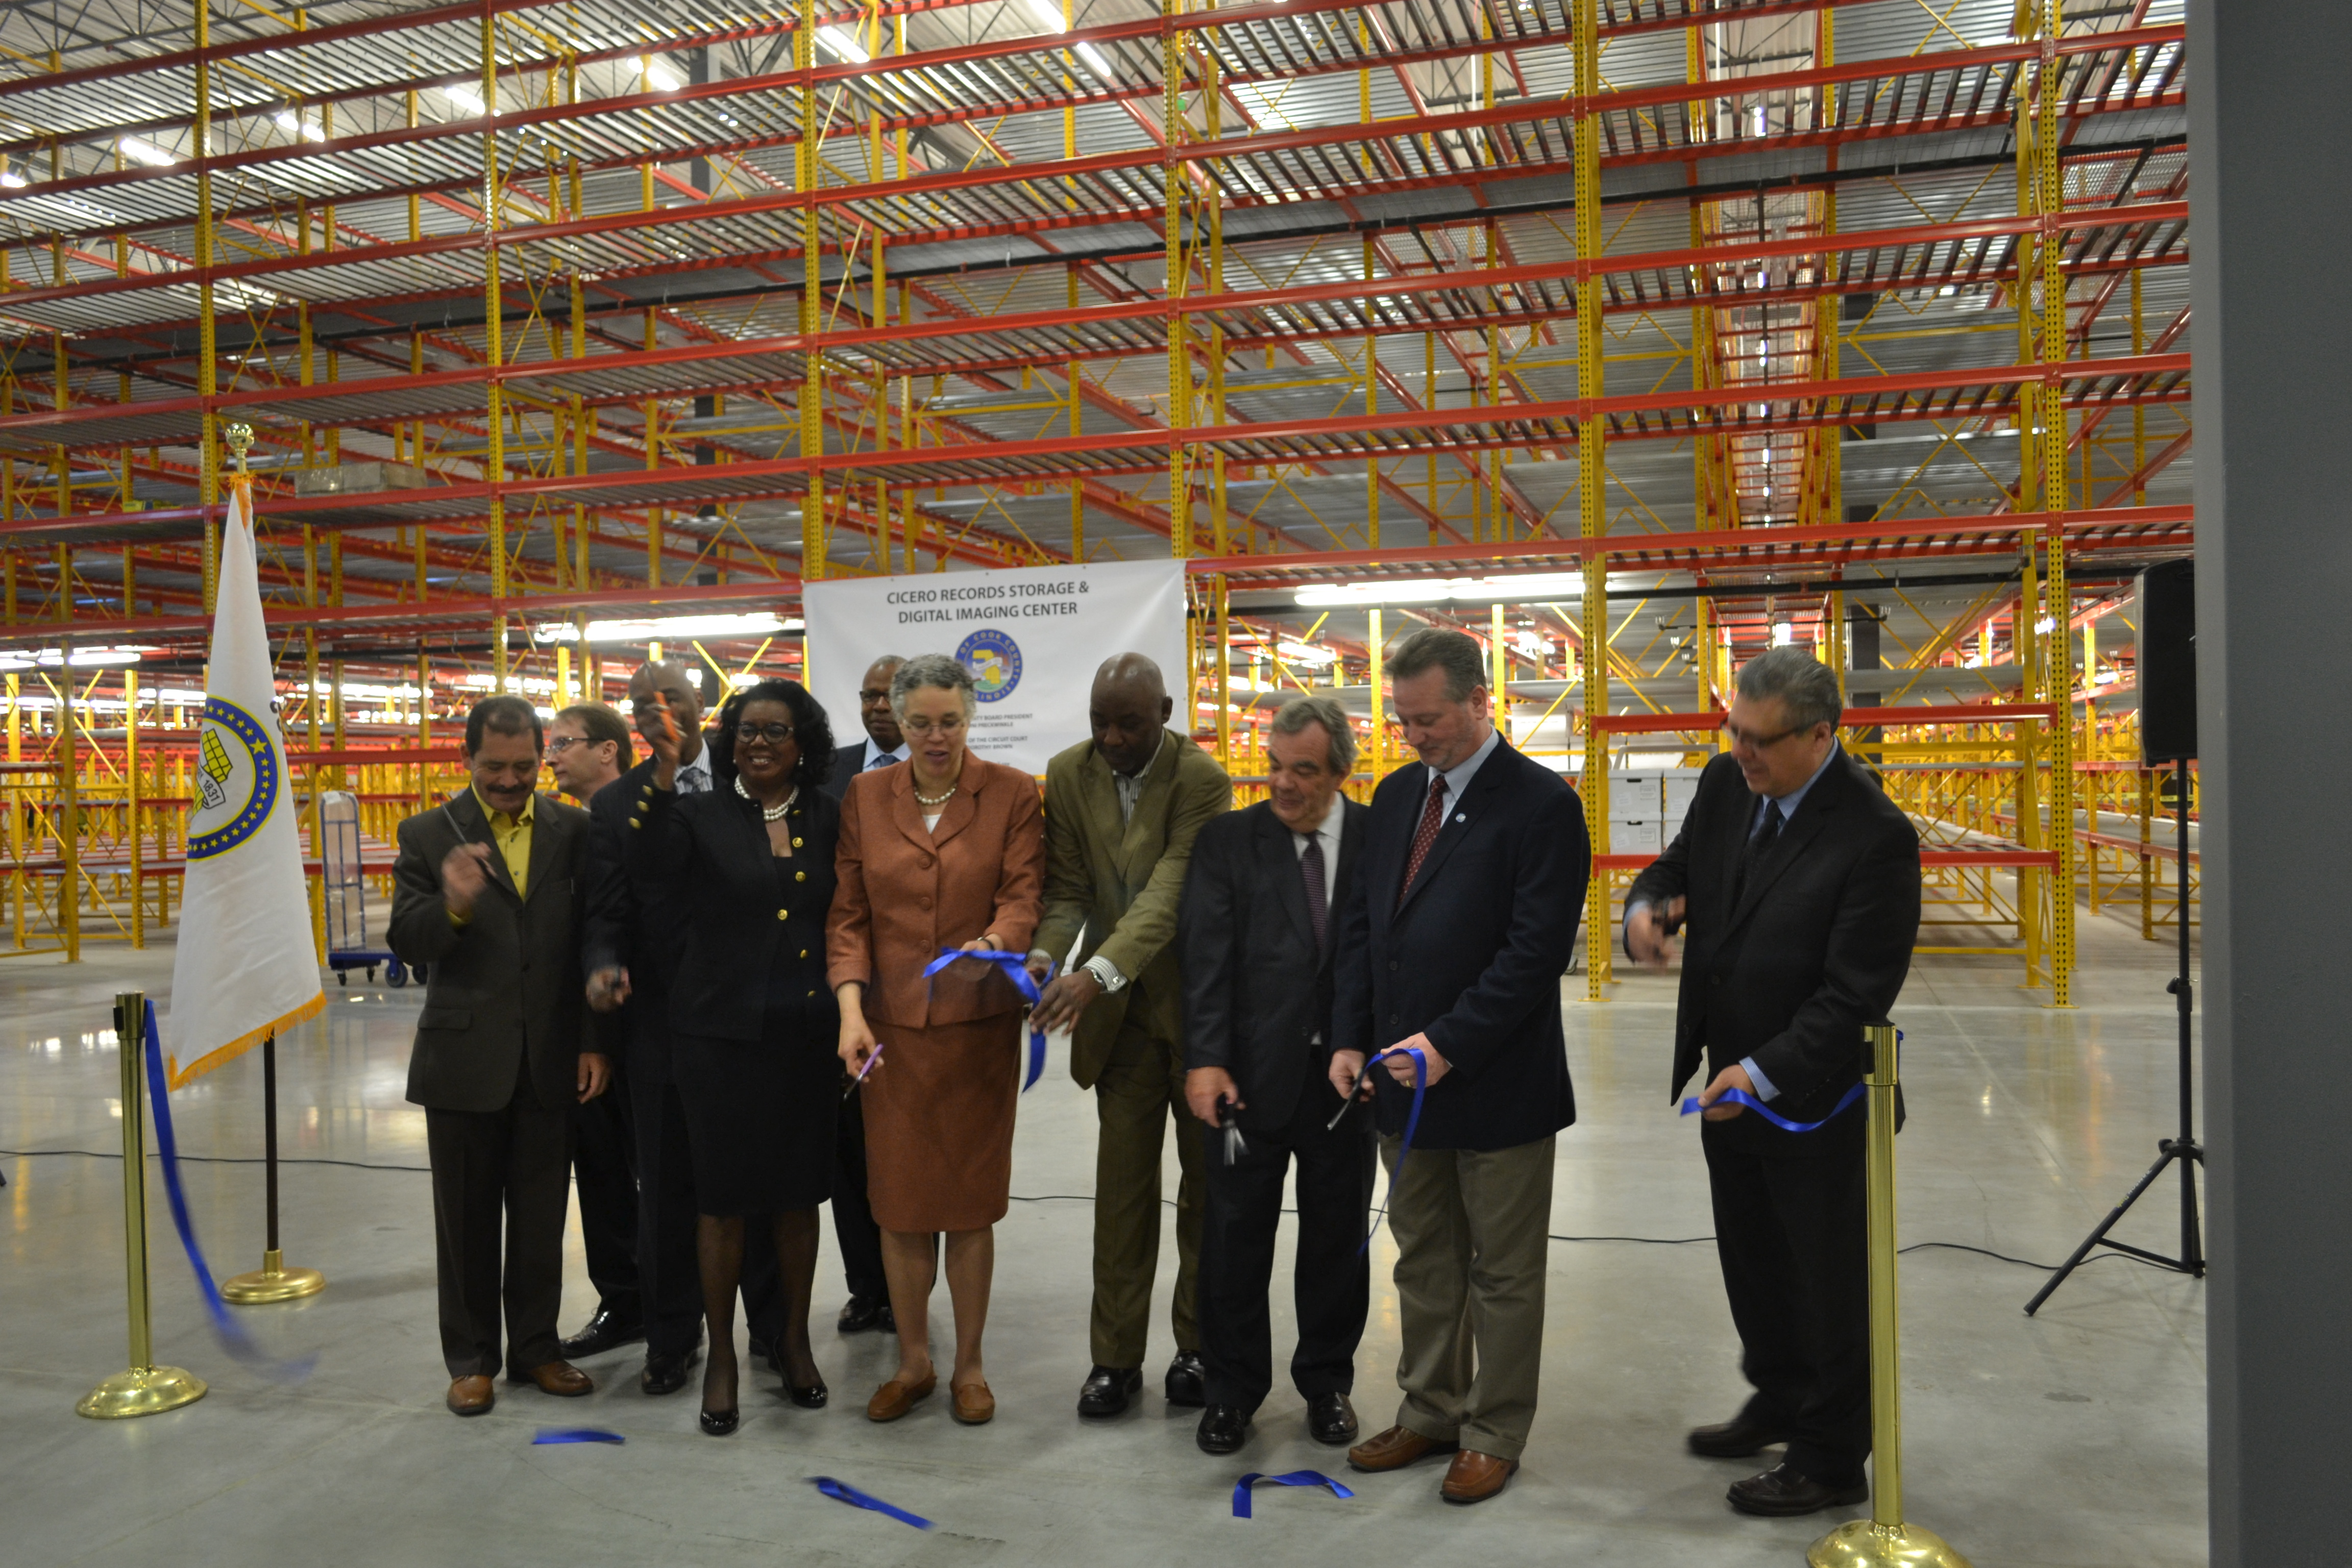 Illinois cook county cicero - April 22 2014 Cook County President Toni Preckwinkle And Clerk Of The Circuit Court Dorothy Brown Announced The Opening Of The New Records Storage And